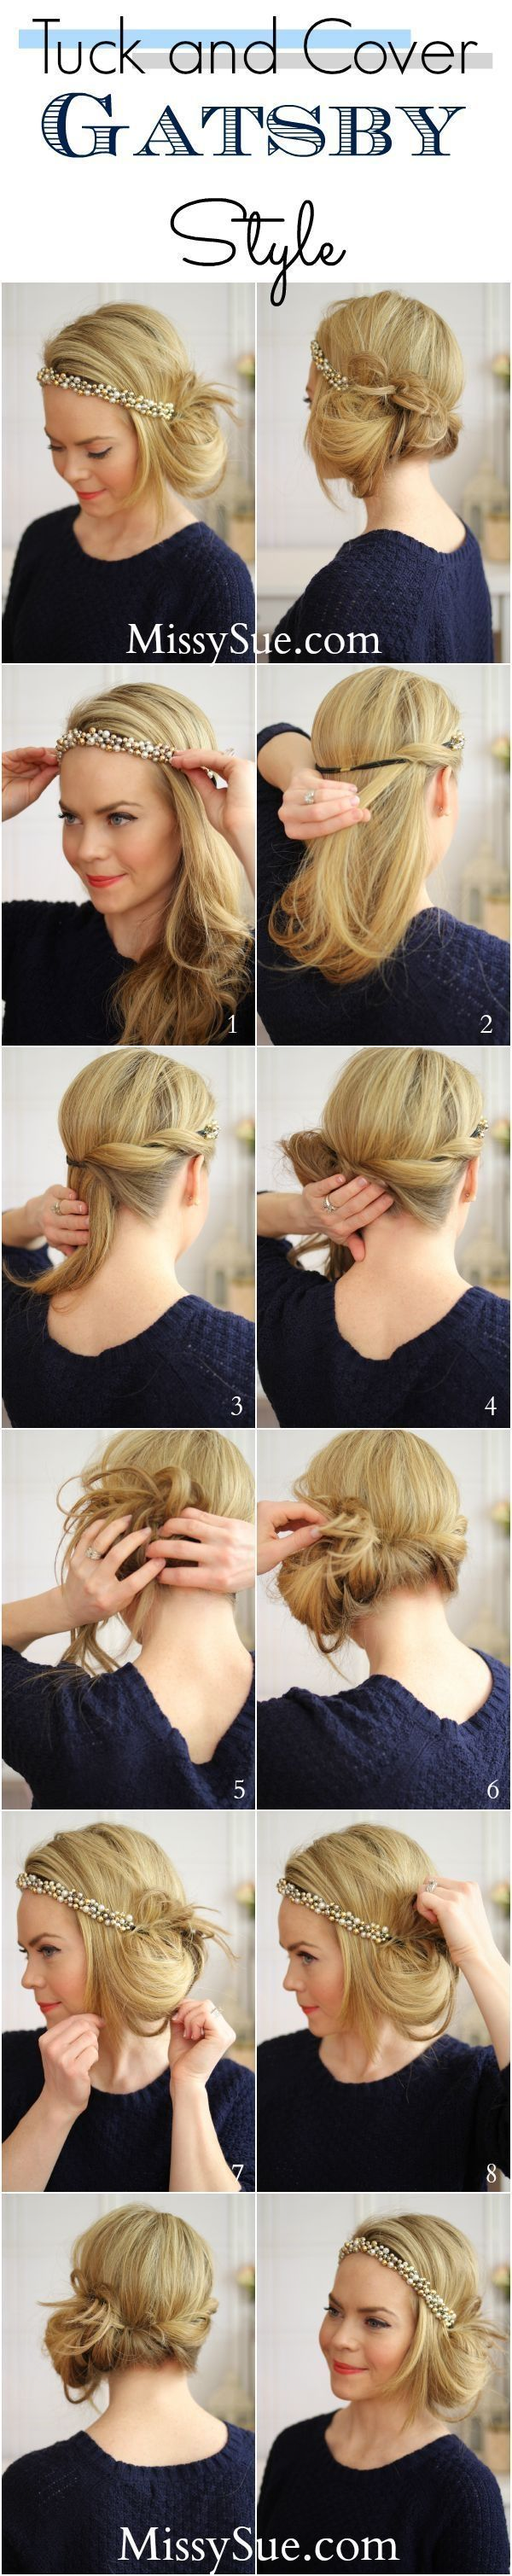 The Great Gatsby Inspired Hairstyle Tutorial Alldaychic Vintage Wedding Hair Hair Styles Vintage Hairstyles